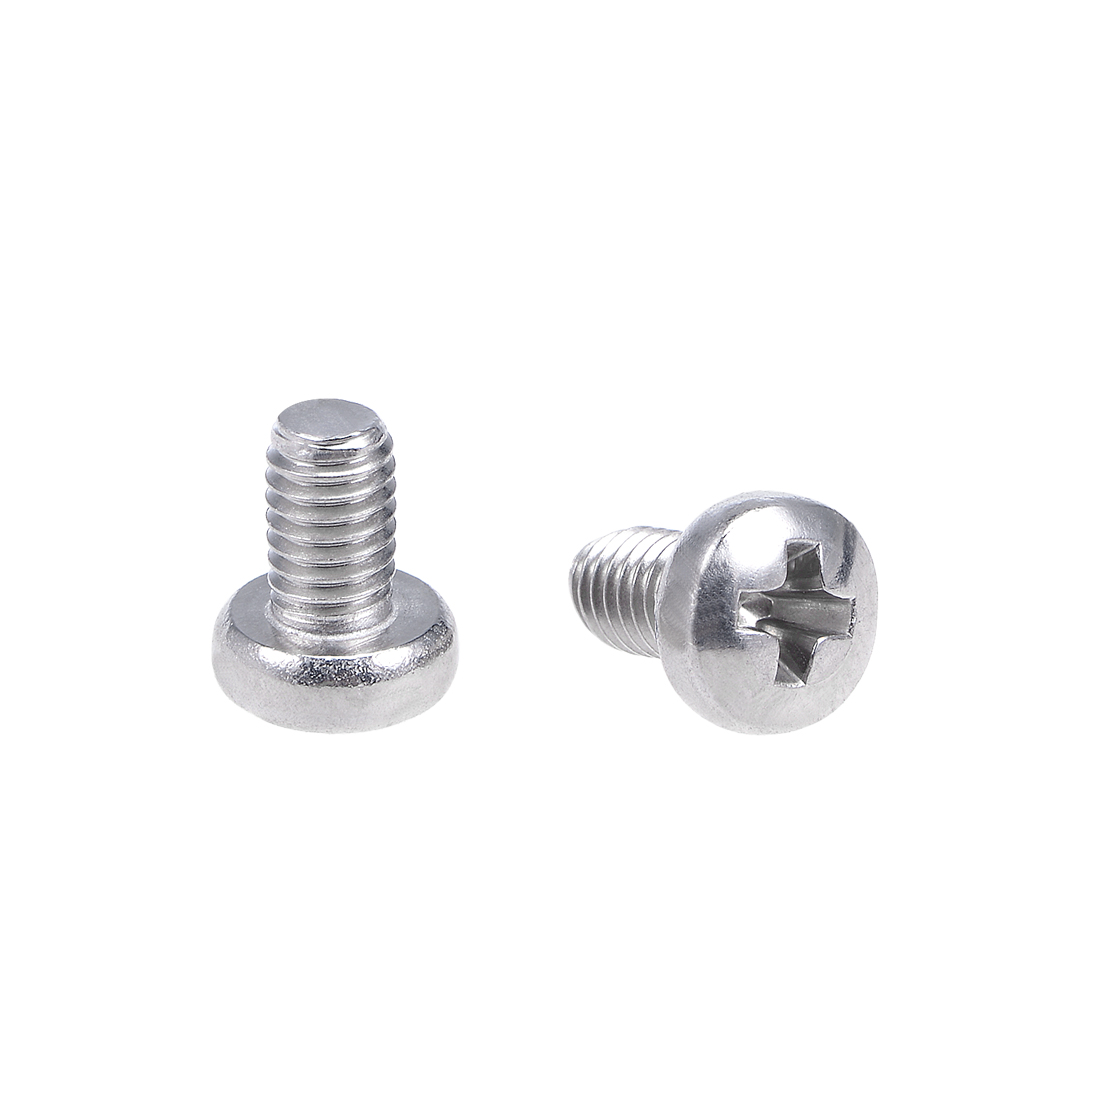 uxcell Machine Screws Cross Head Screw 304 Stainless Steel Fasteners Bolts <font><b>M3x5mm</b></font> 60Pcs image